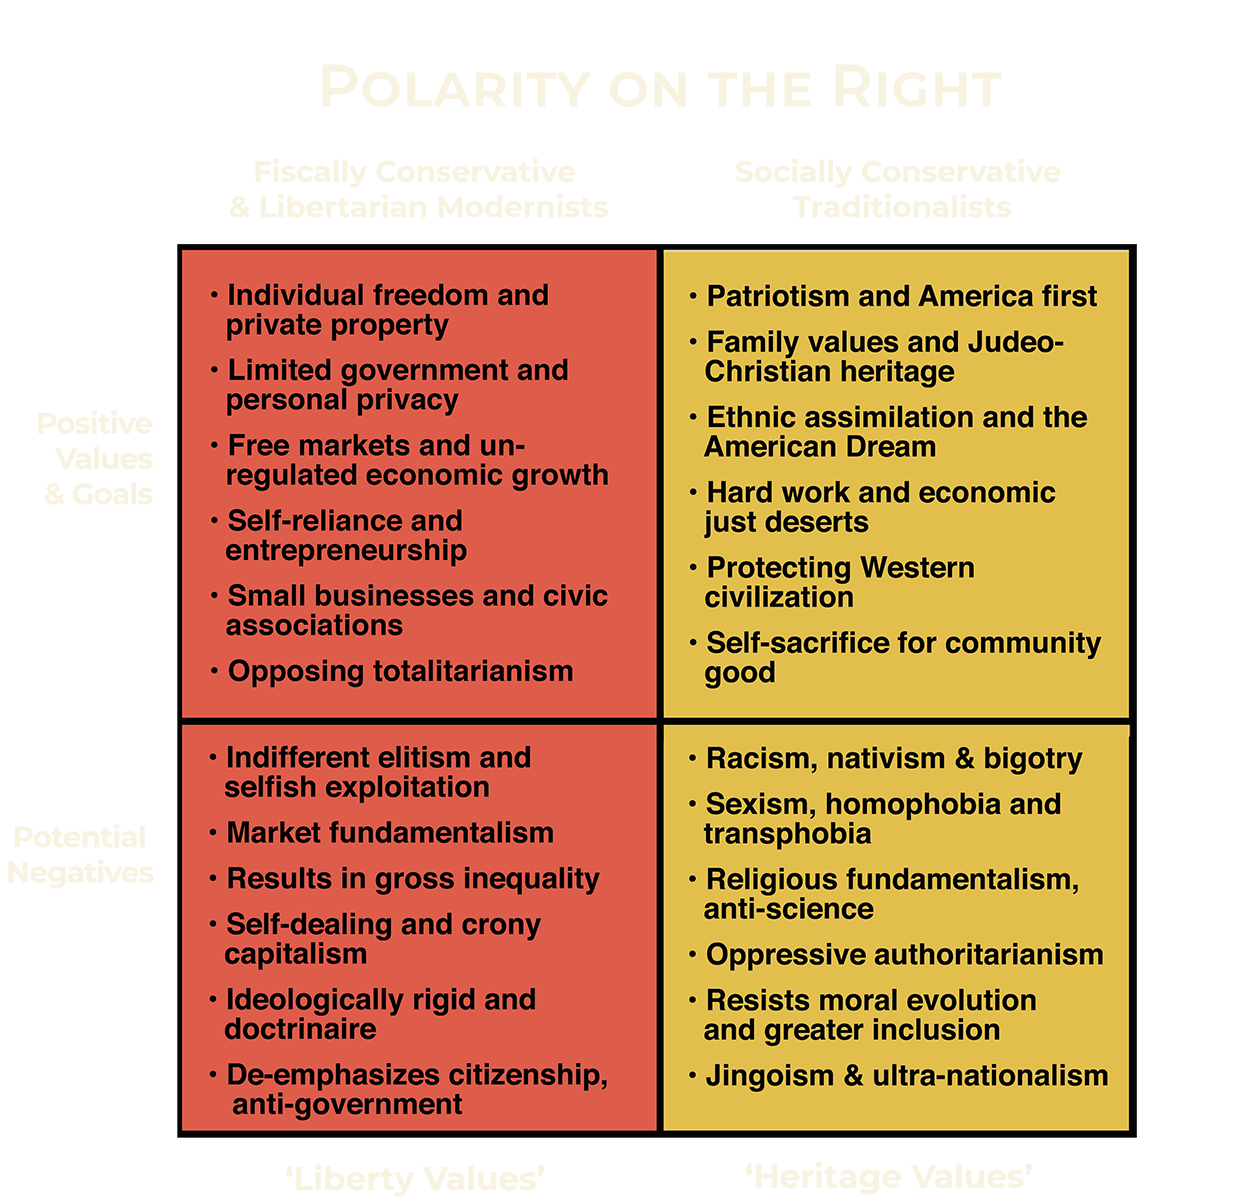 Polarity on the Right